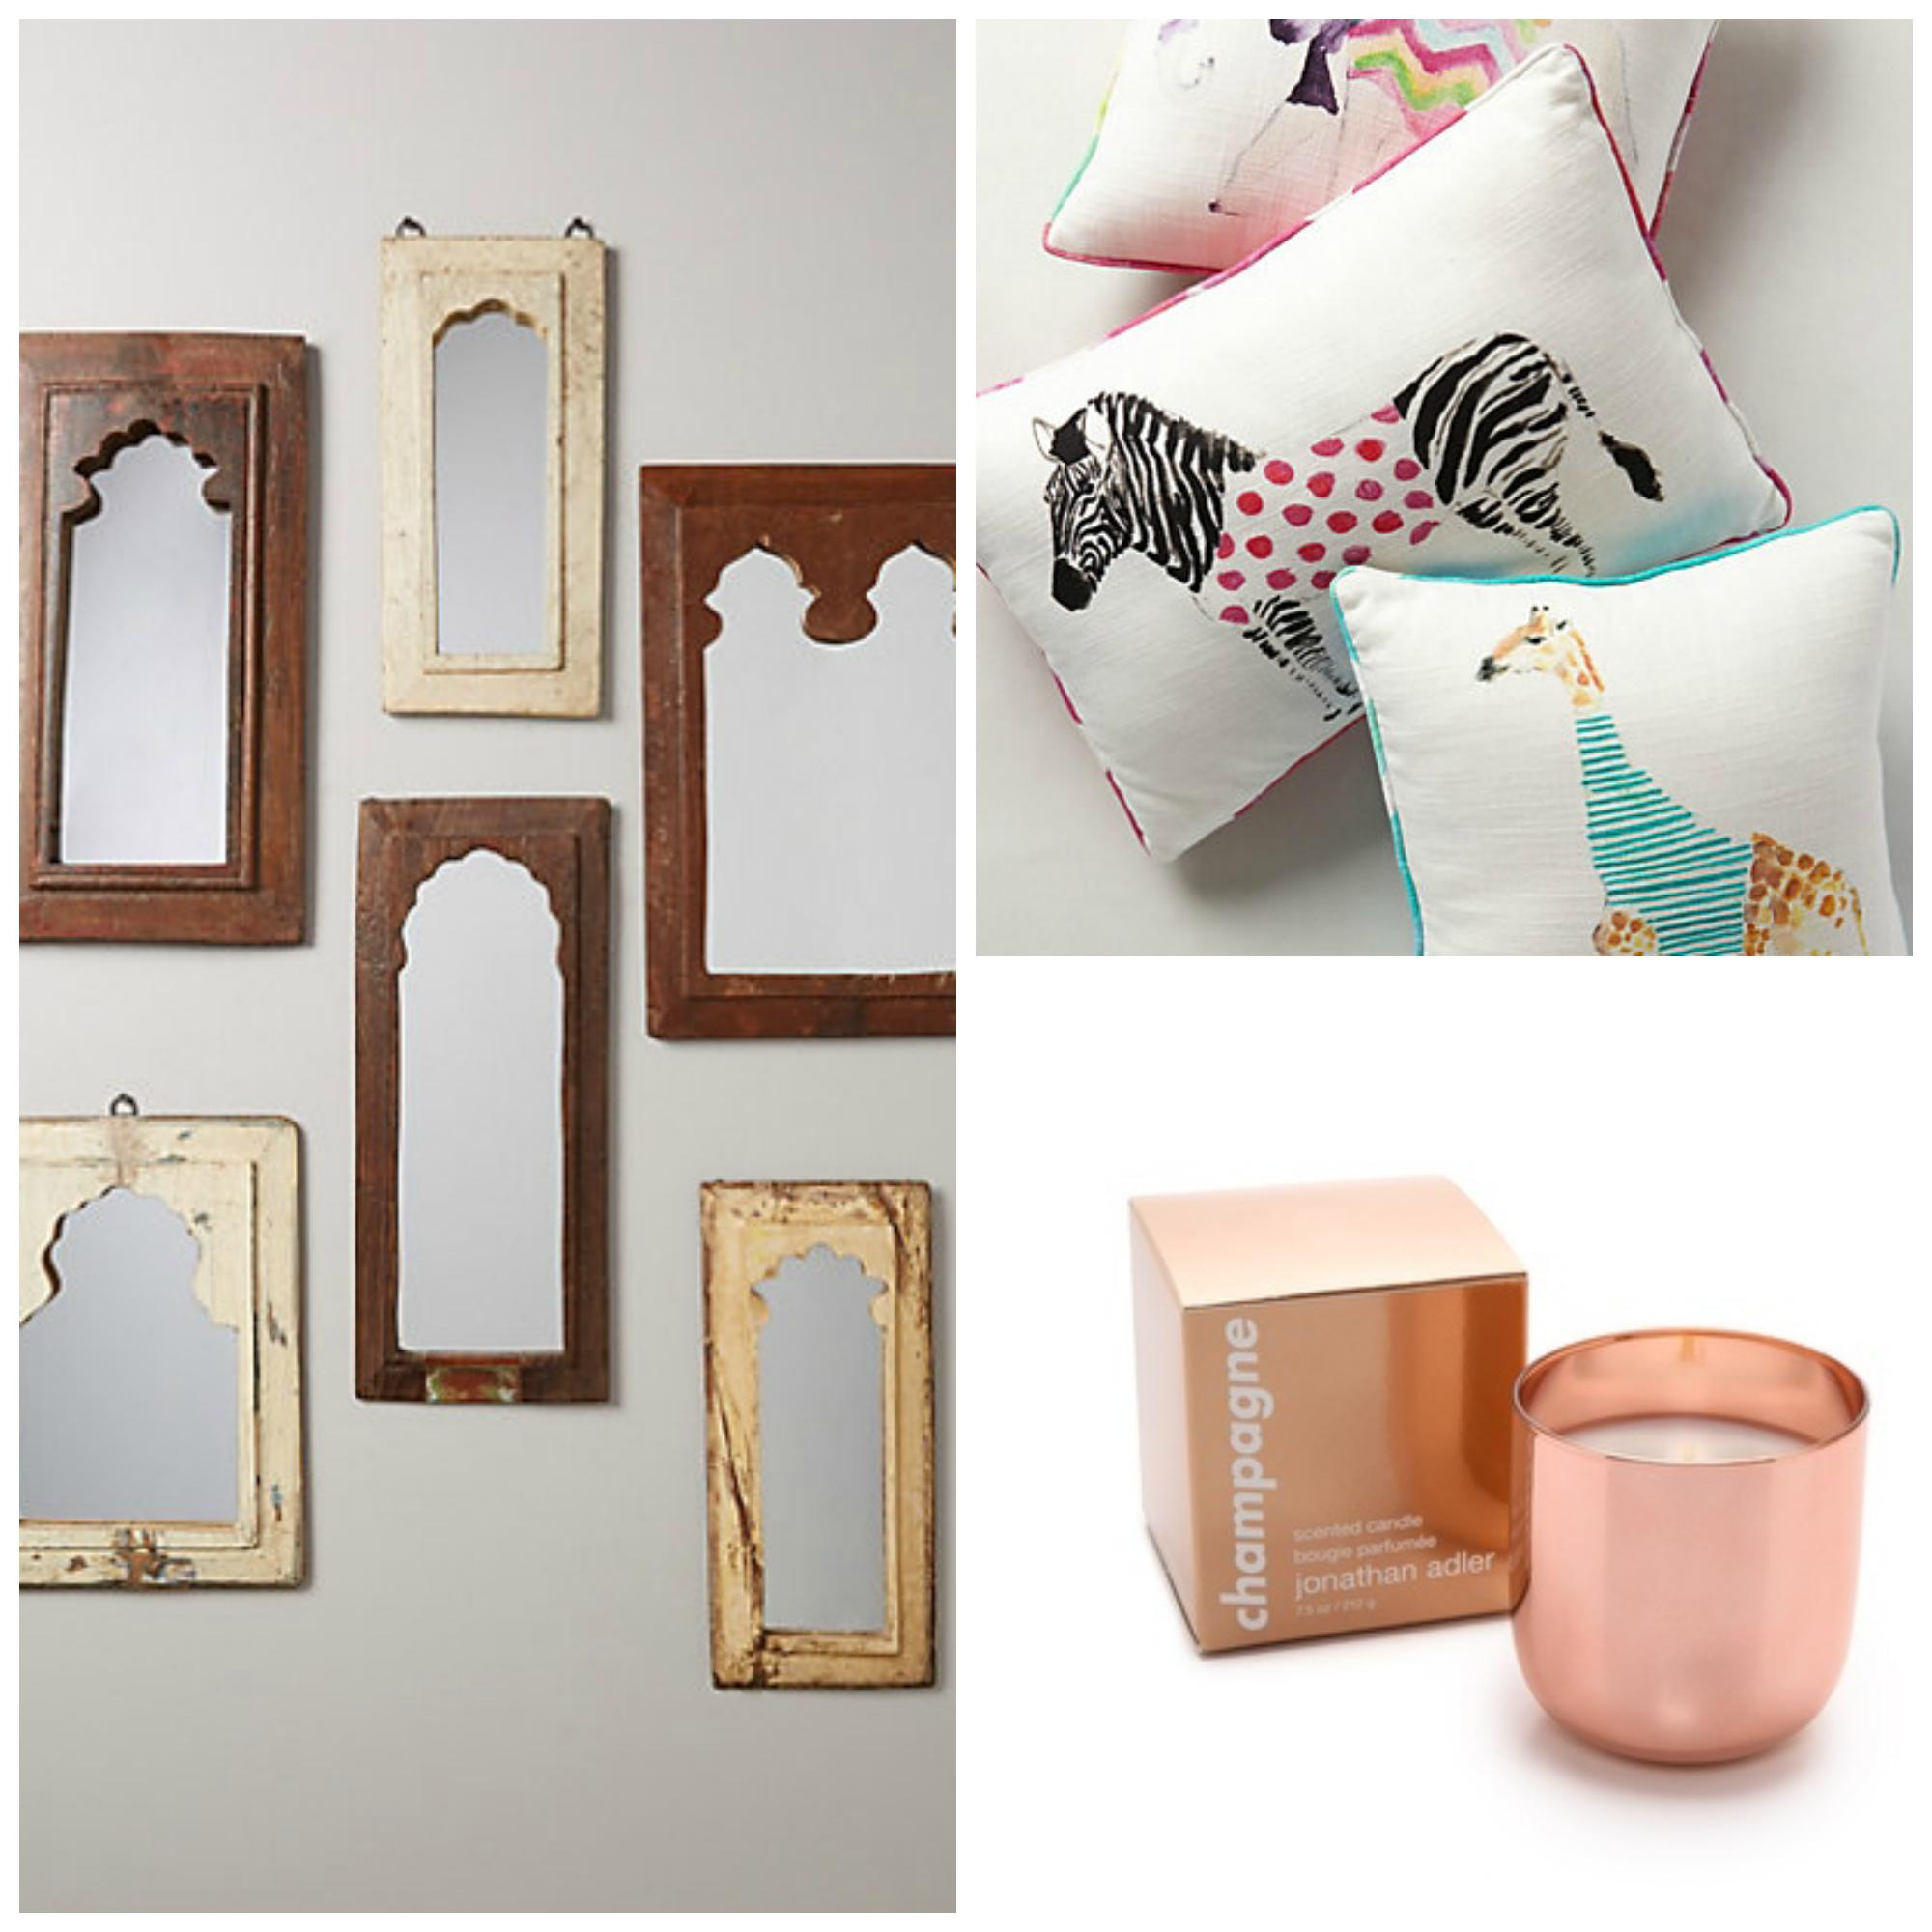 The #dormroom essentials every college student needs: http://t.co/yHNF5rWHHm http://t.co/npIhLrHHMj